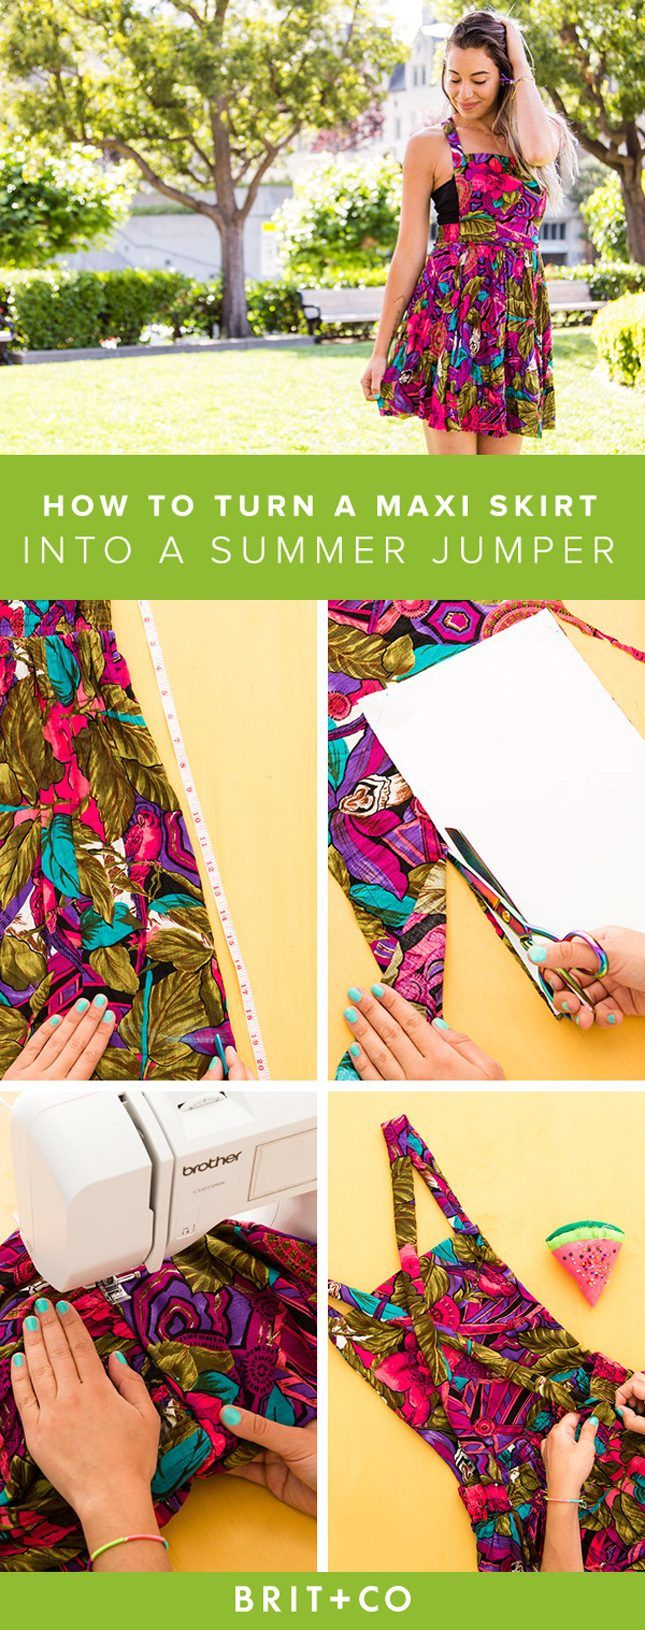 How to Turn a Thrift Store Maxi Skirt into a Summer Jumper via Brit + Co